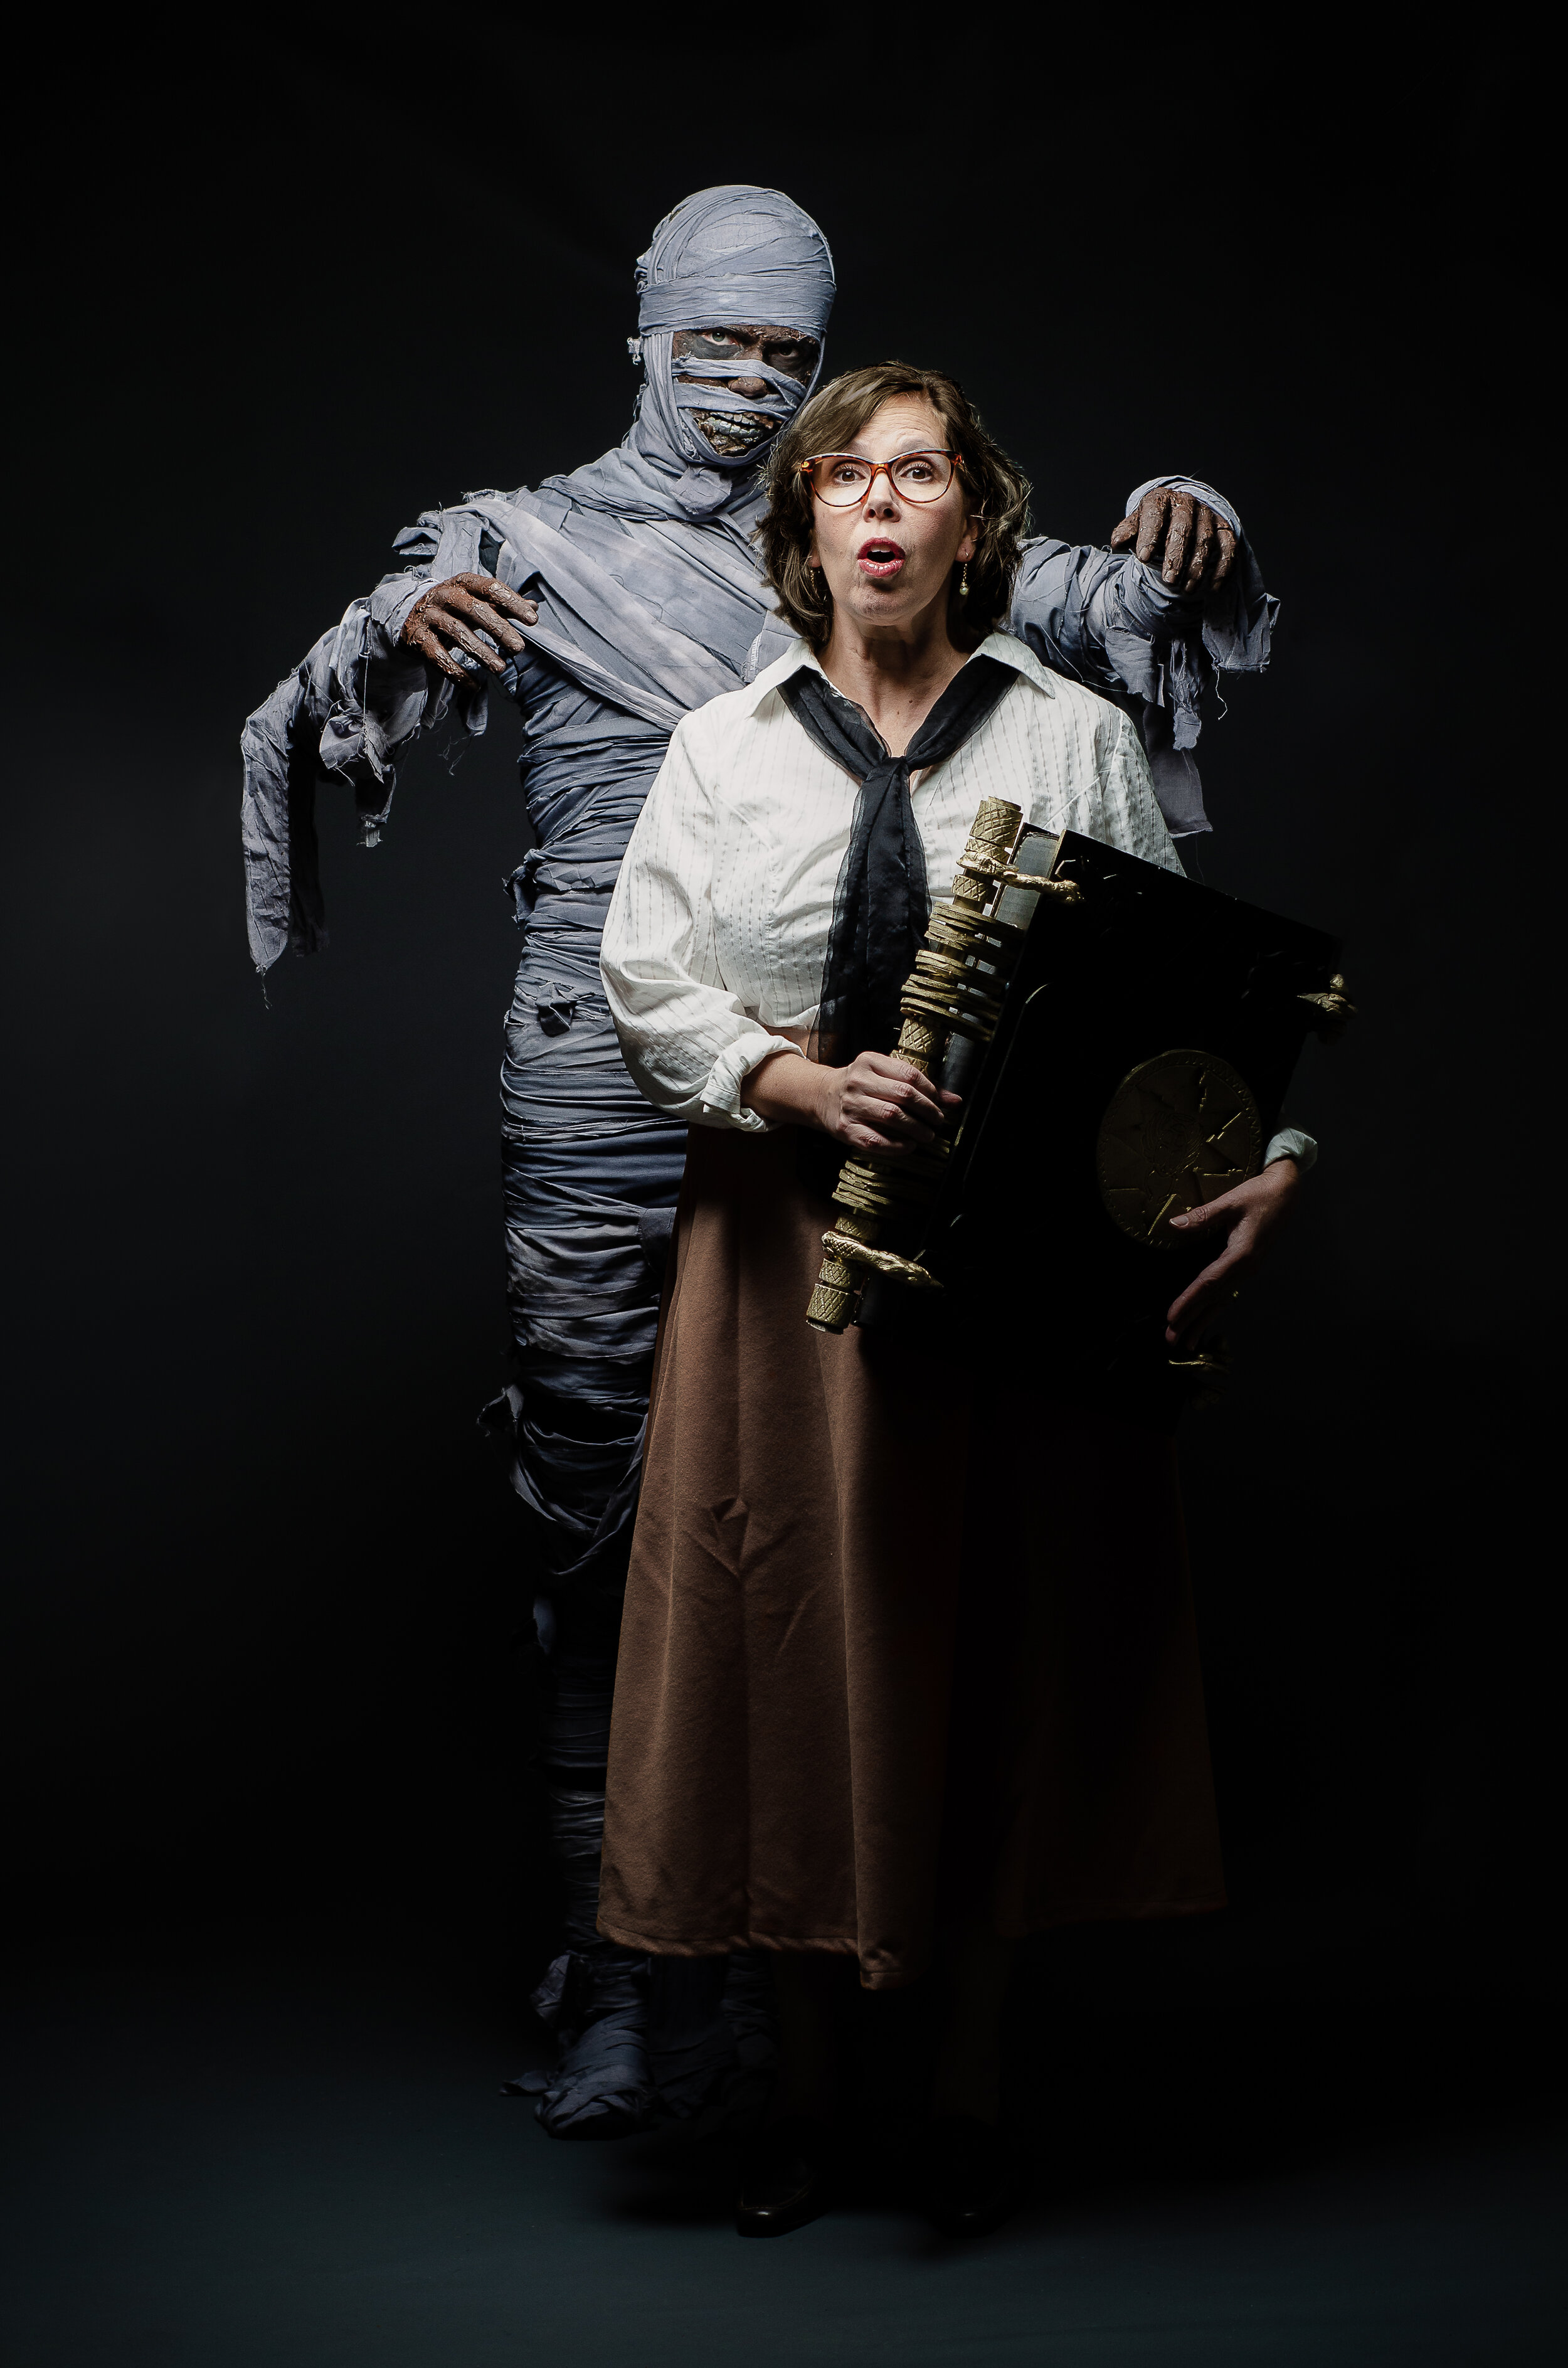 Sue and The Mummy